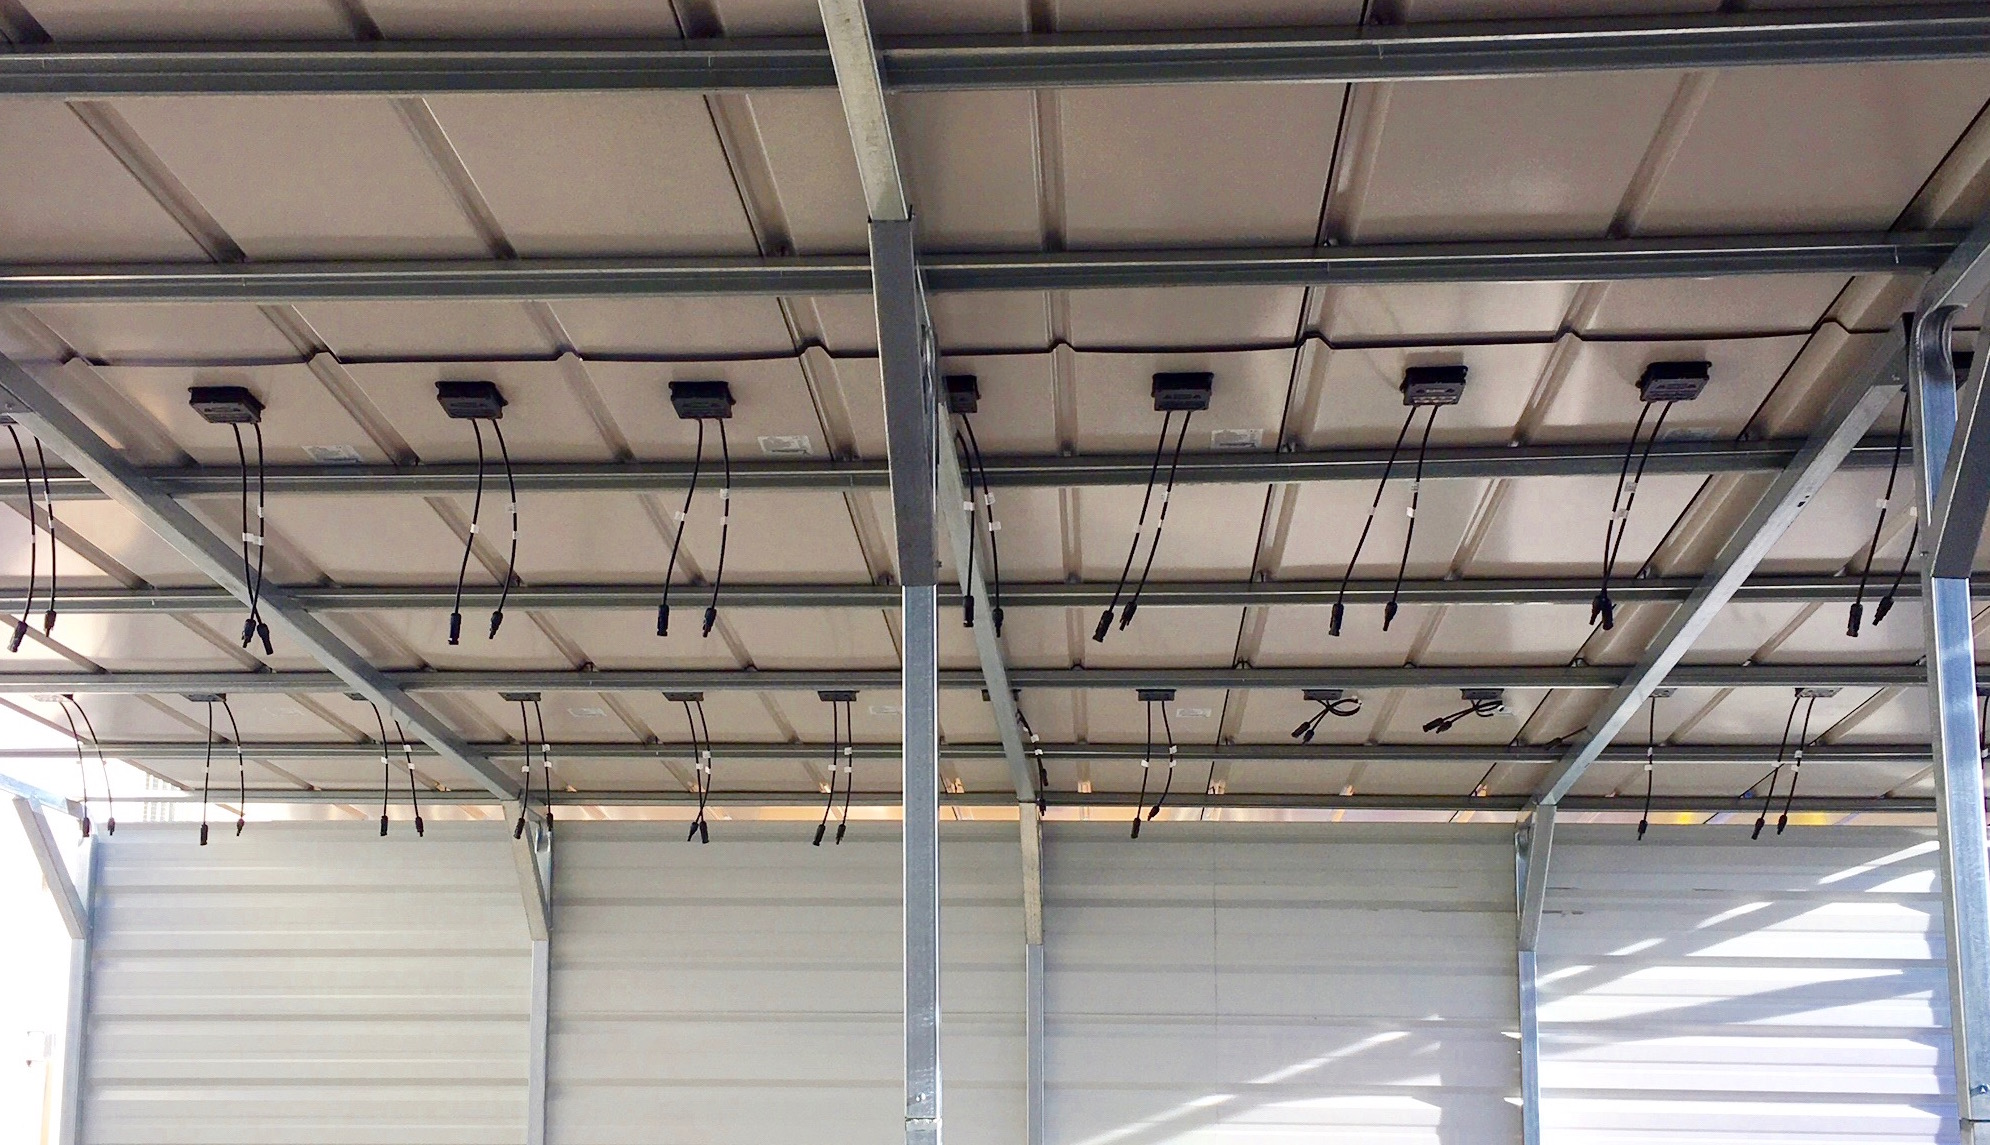 Sunnycal Solar Provides Carport For Homes And Businesses Wiring Diagram Fluorescent Lights With Prev